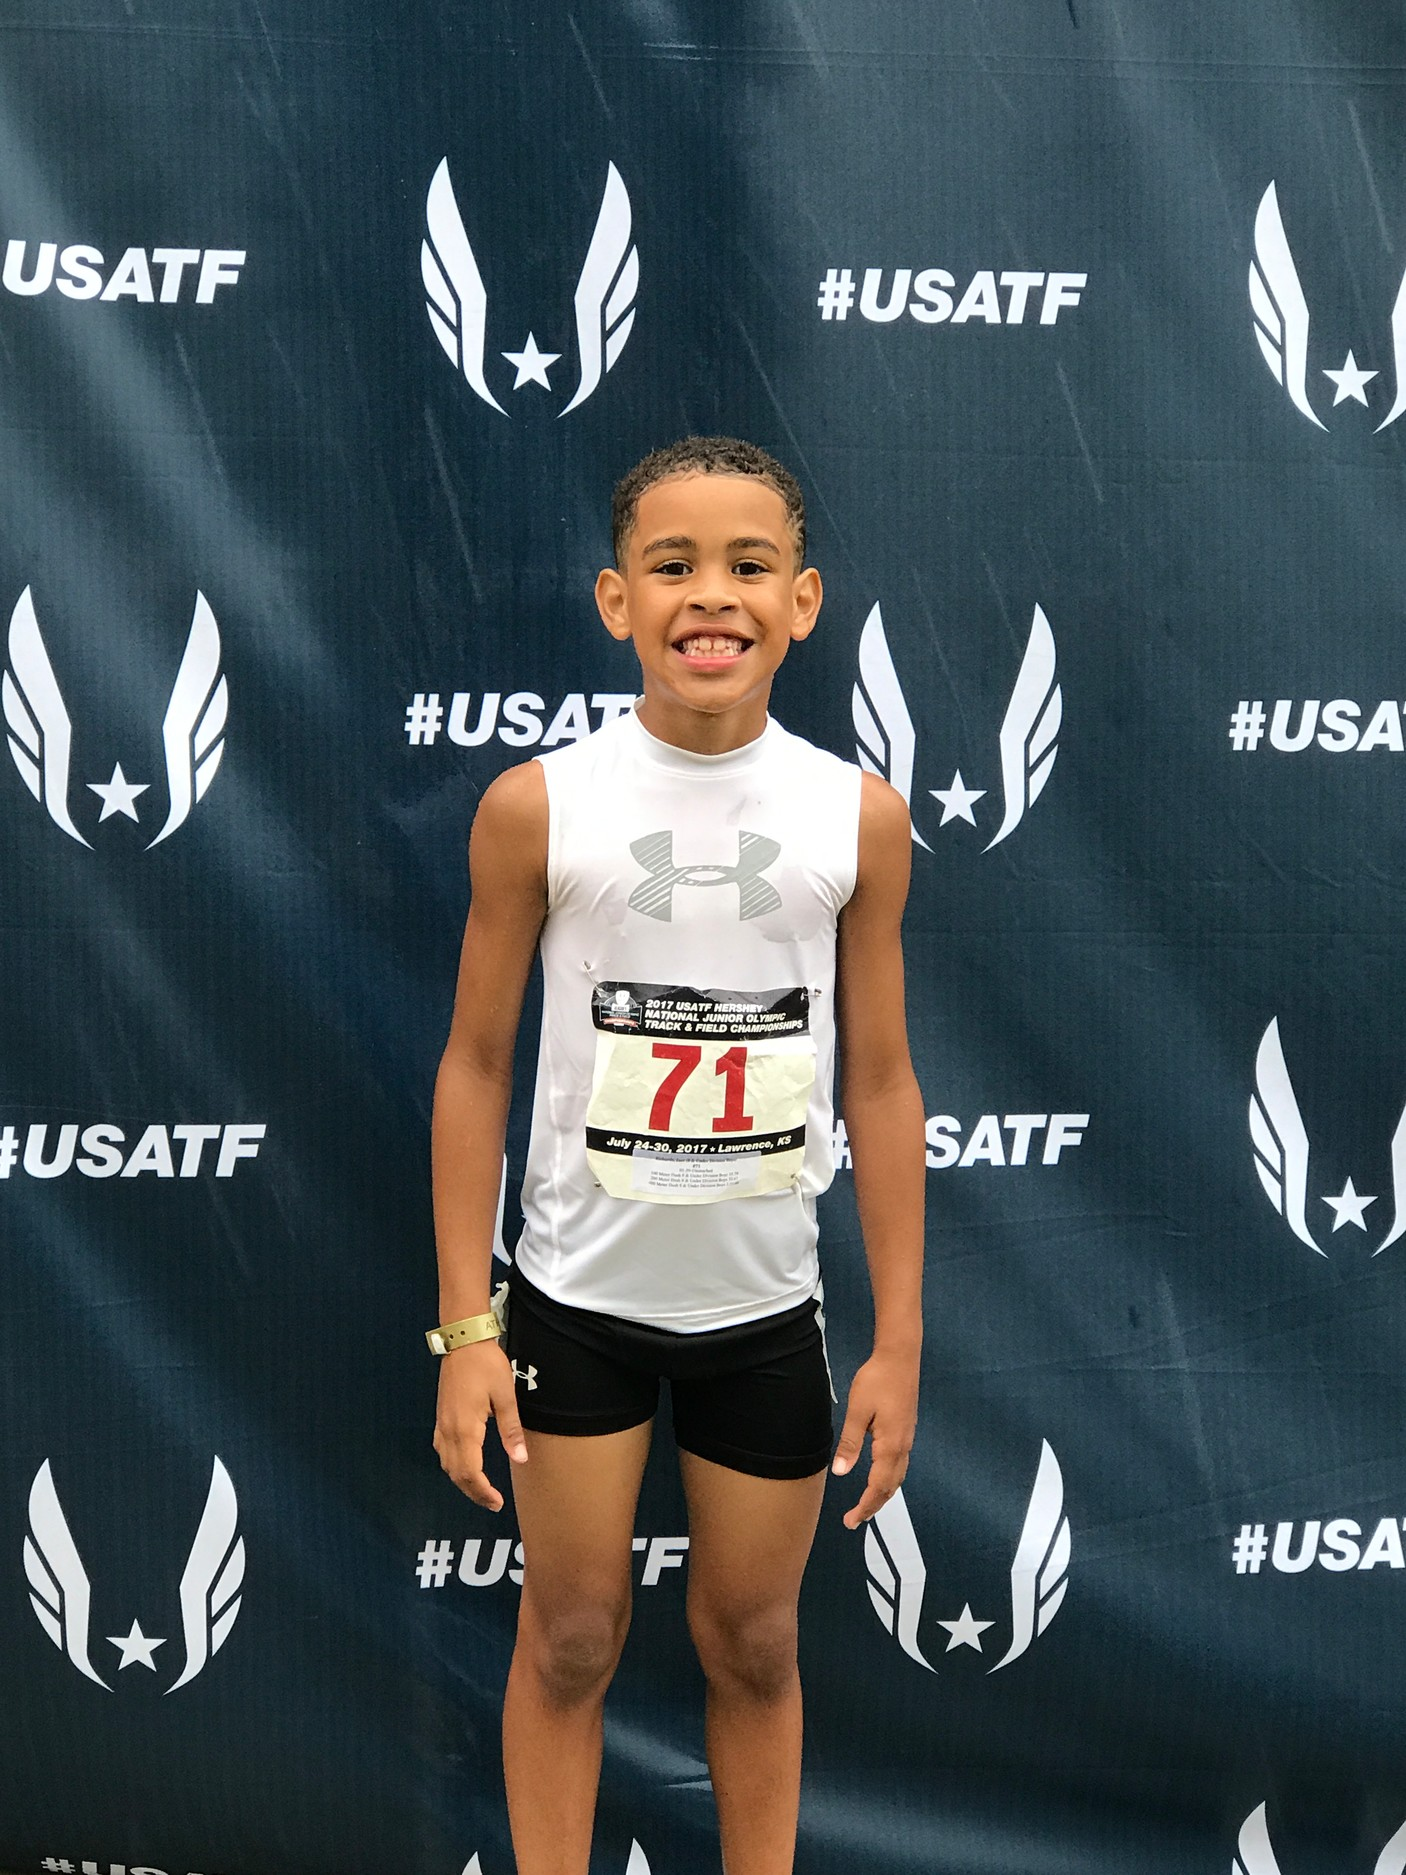 Jace Richards of Malverne competed in the USATF Hershey National Junior Olympics in Kansas last week.